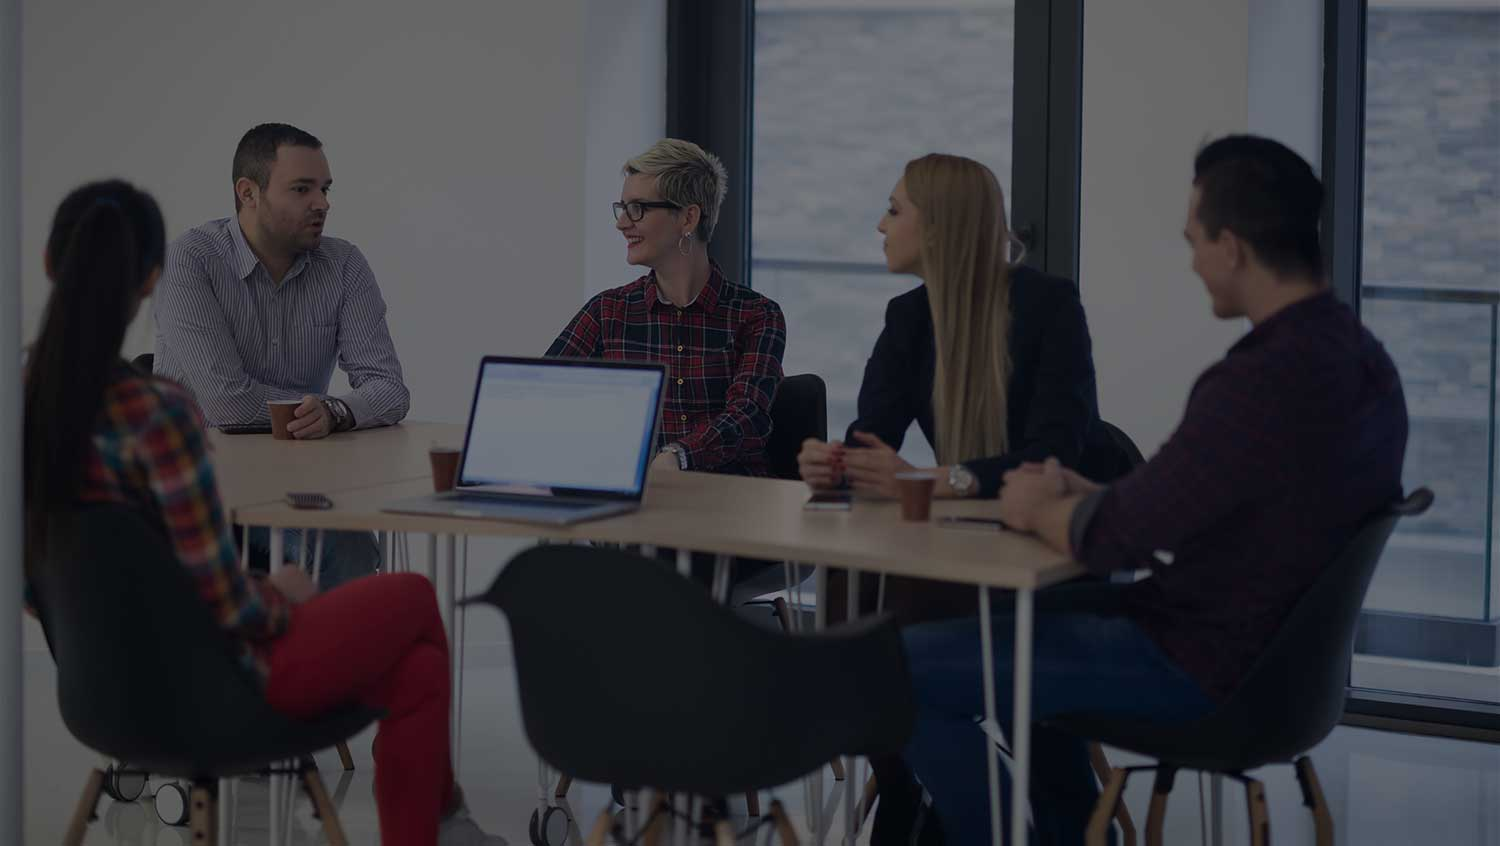 Digital learning insights: The role of student care in the workplace